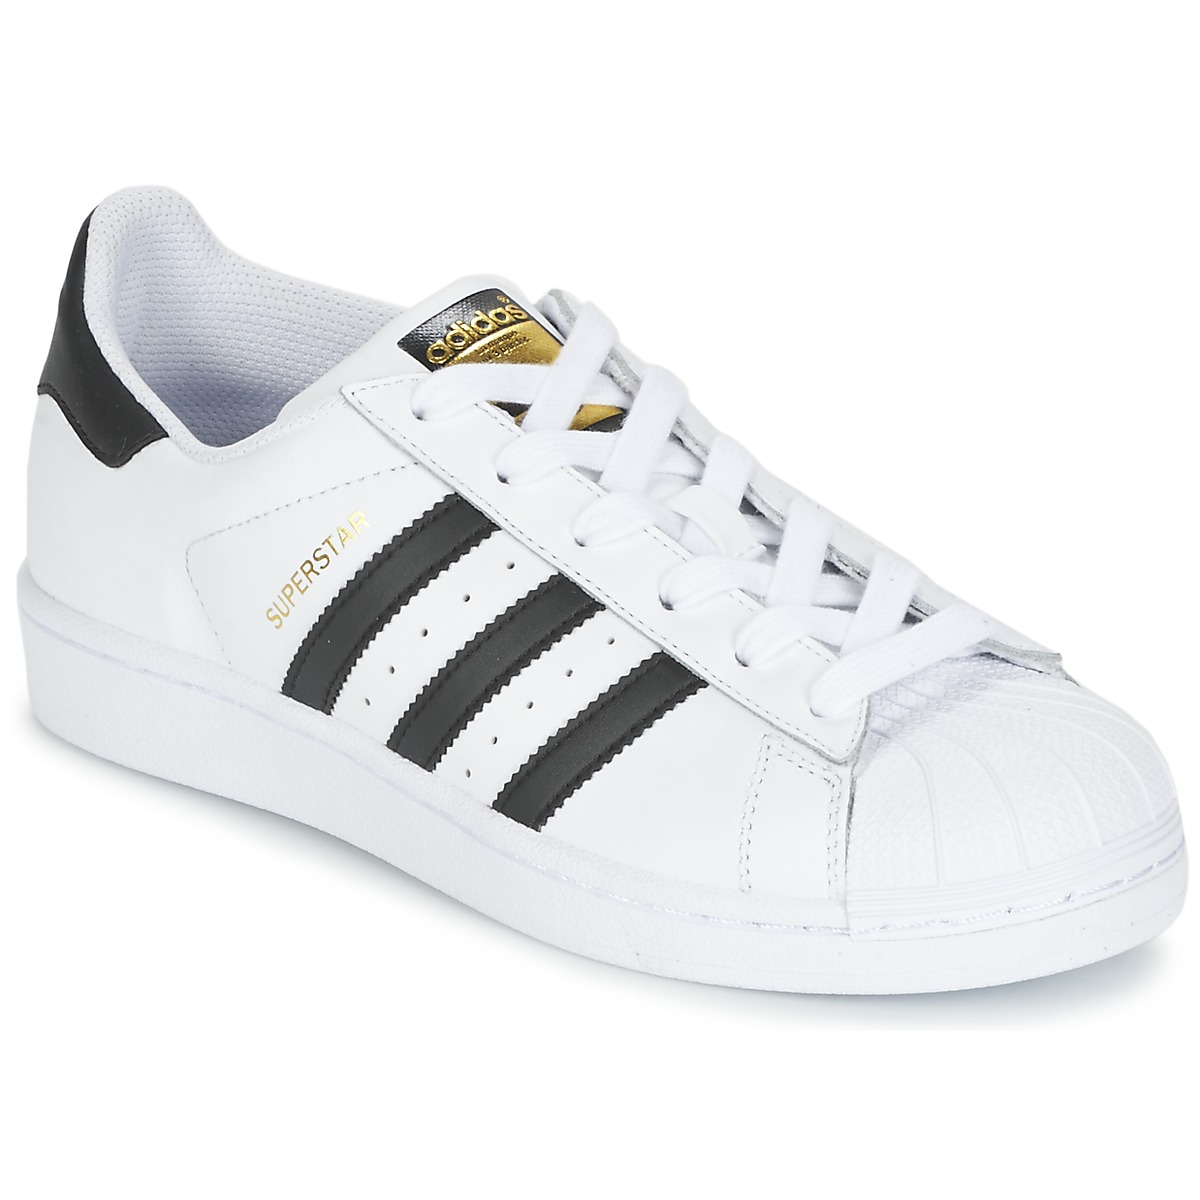 adidas Originals SUPERSTAR White Shoes Low top trainers Child new